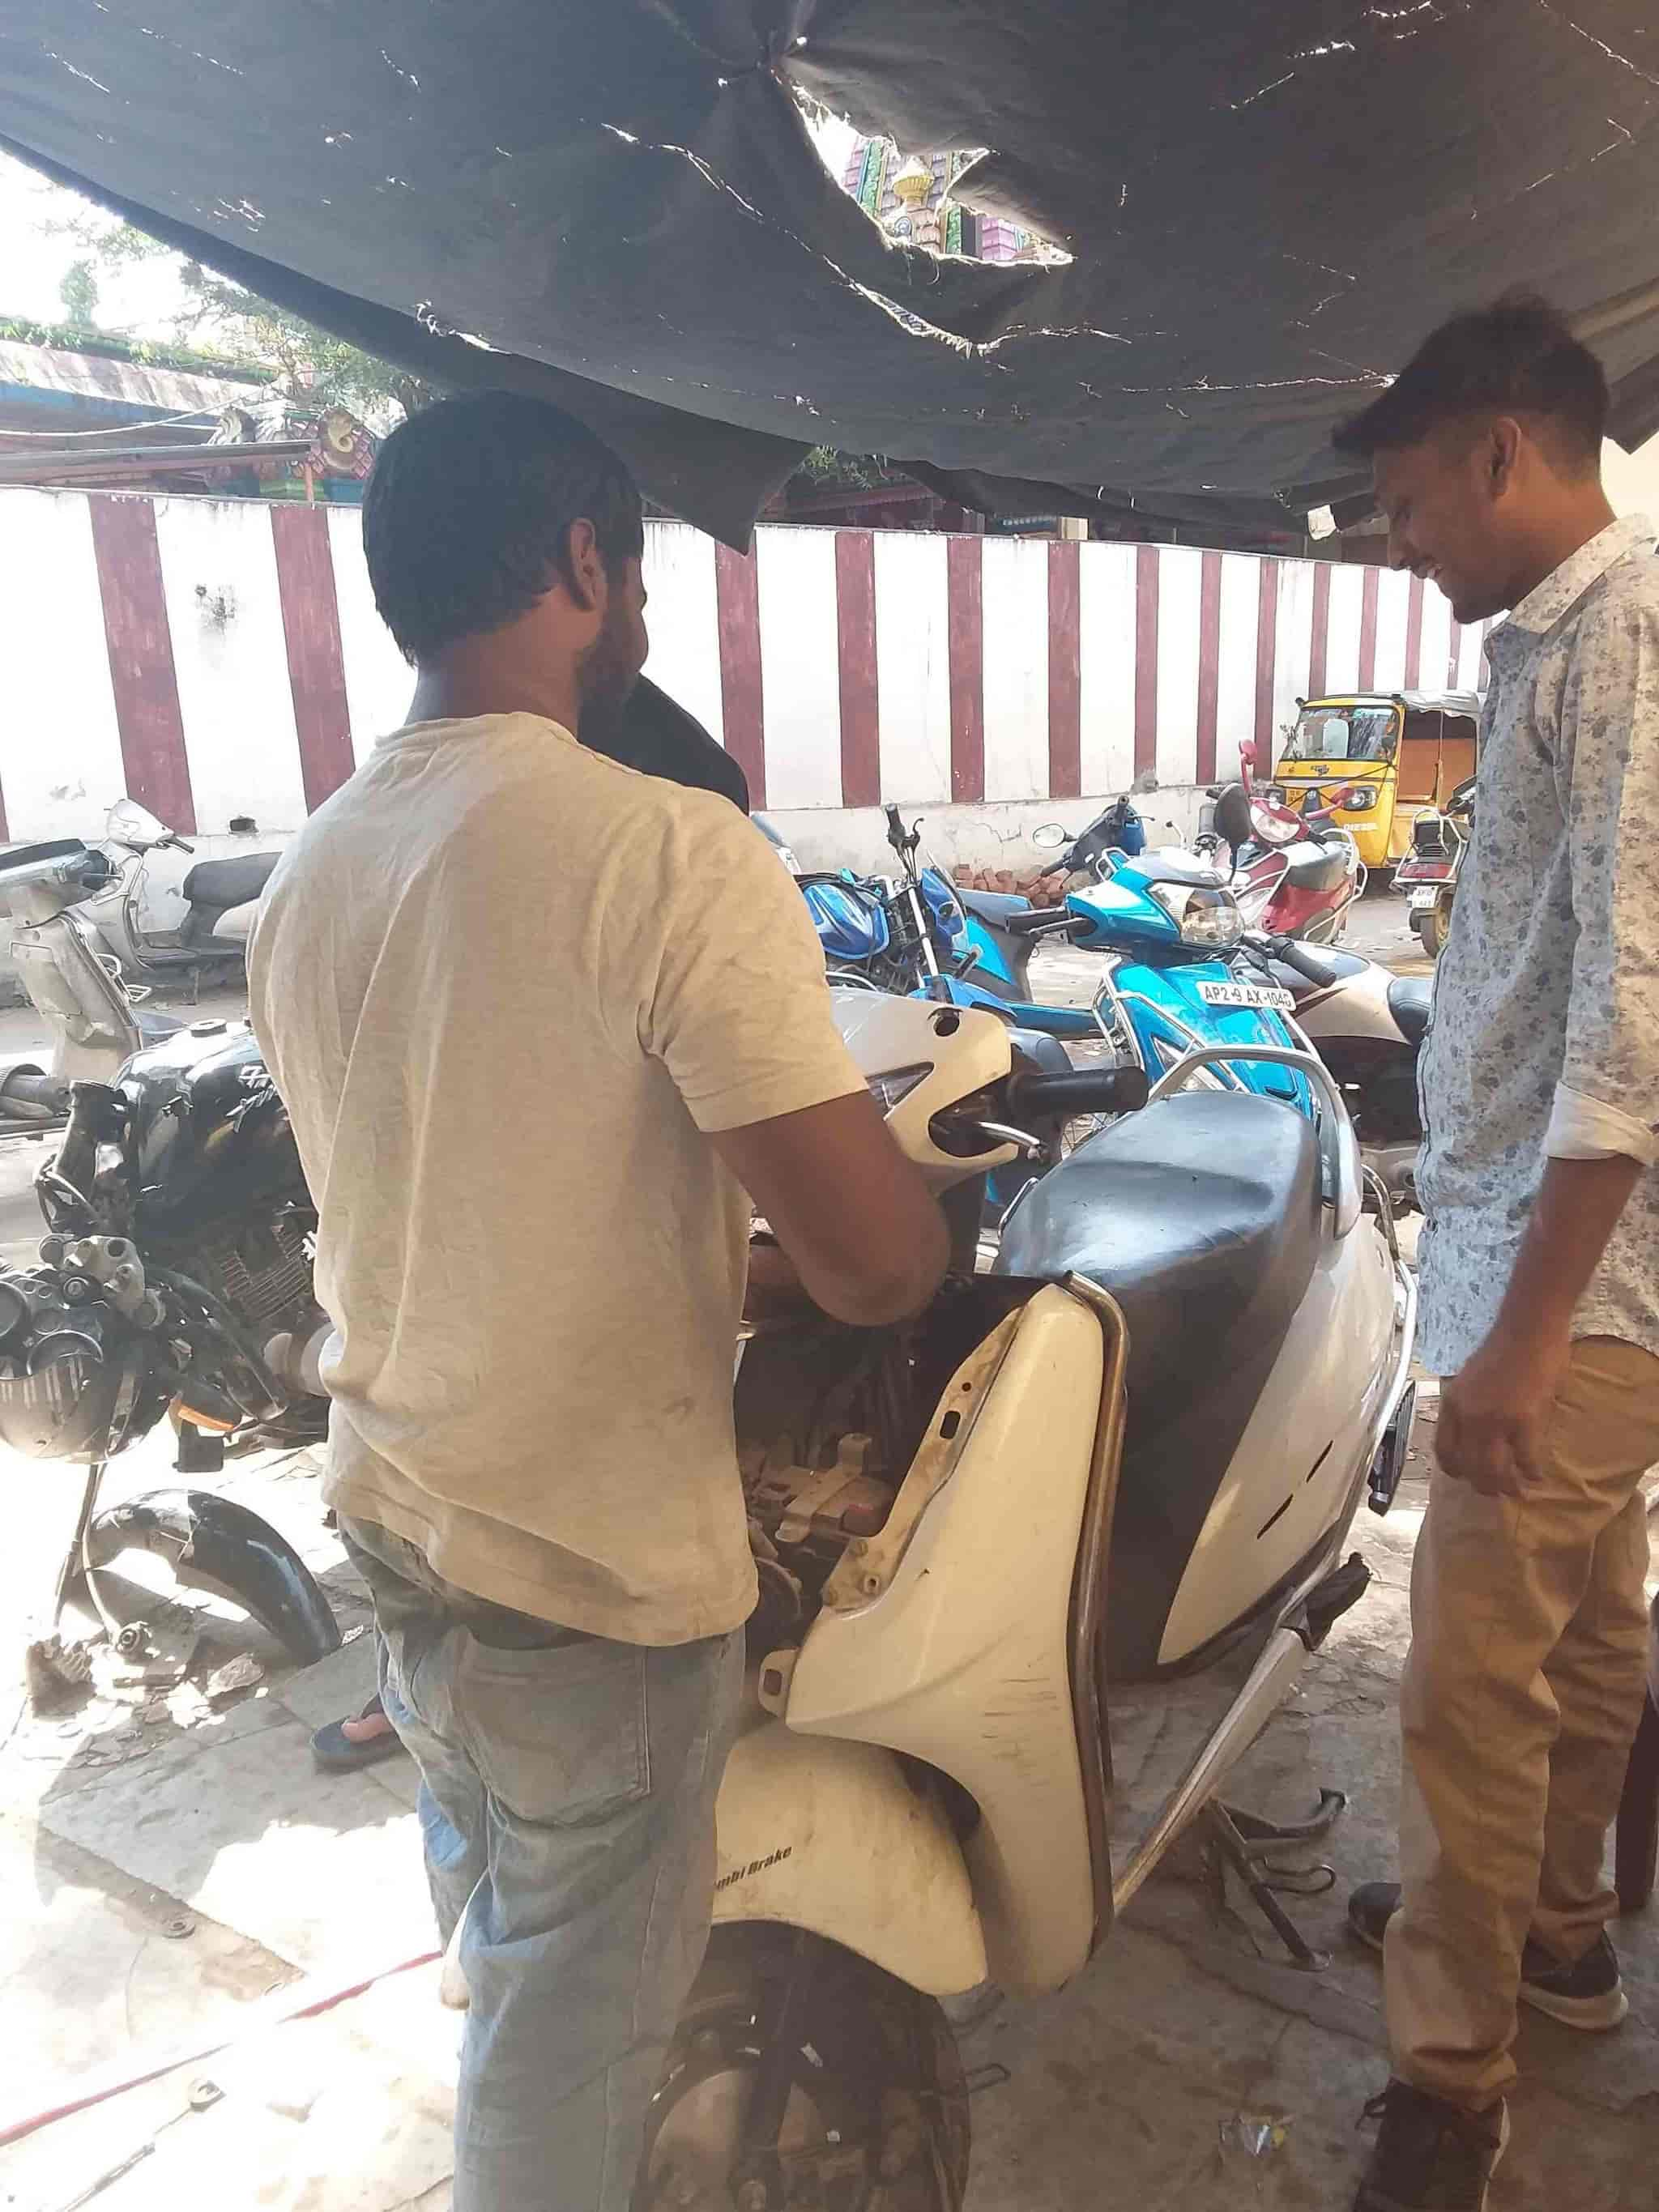 A N Fork Wheel Alignment Photos, ECIL, Hyderabad- Pictures